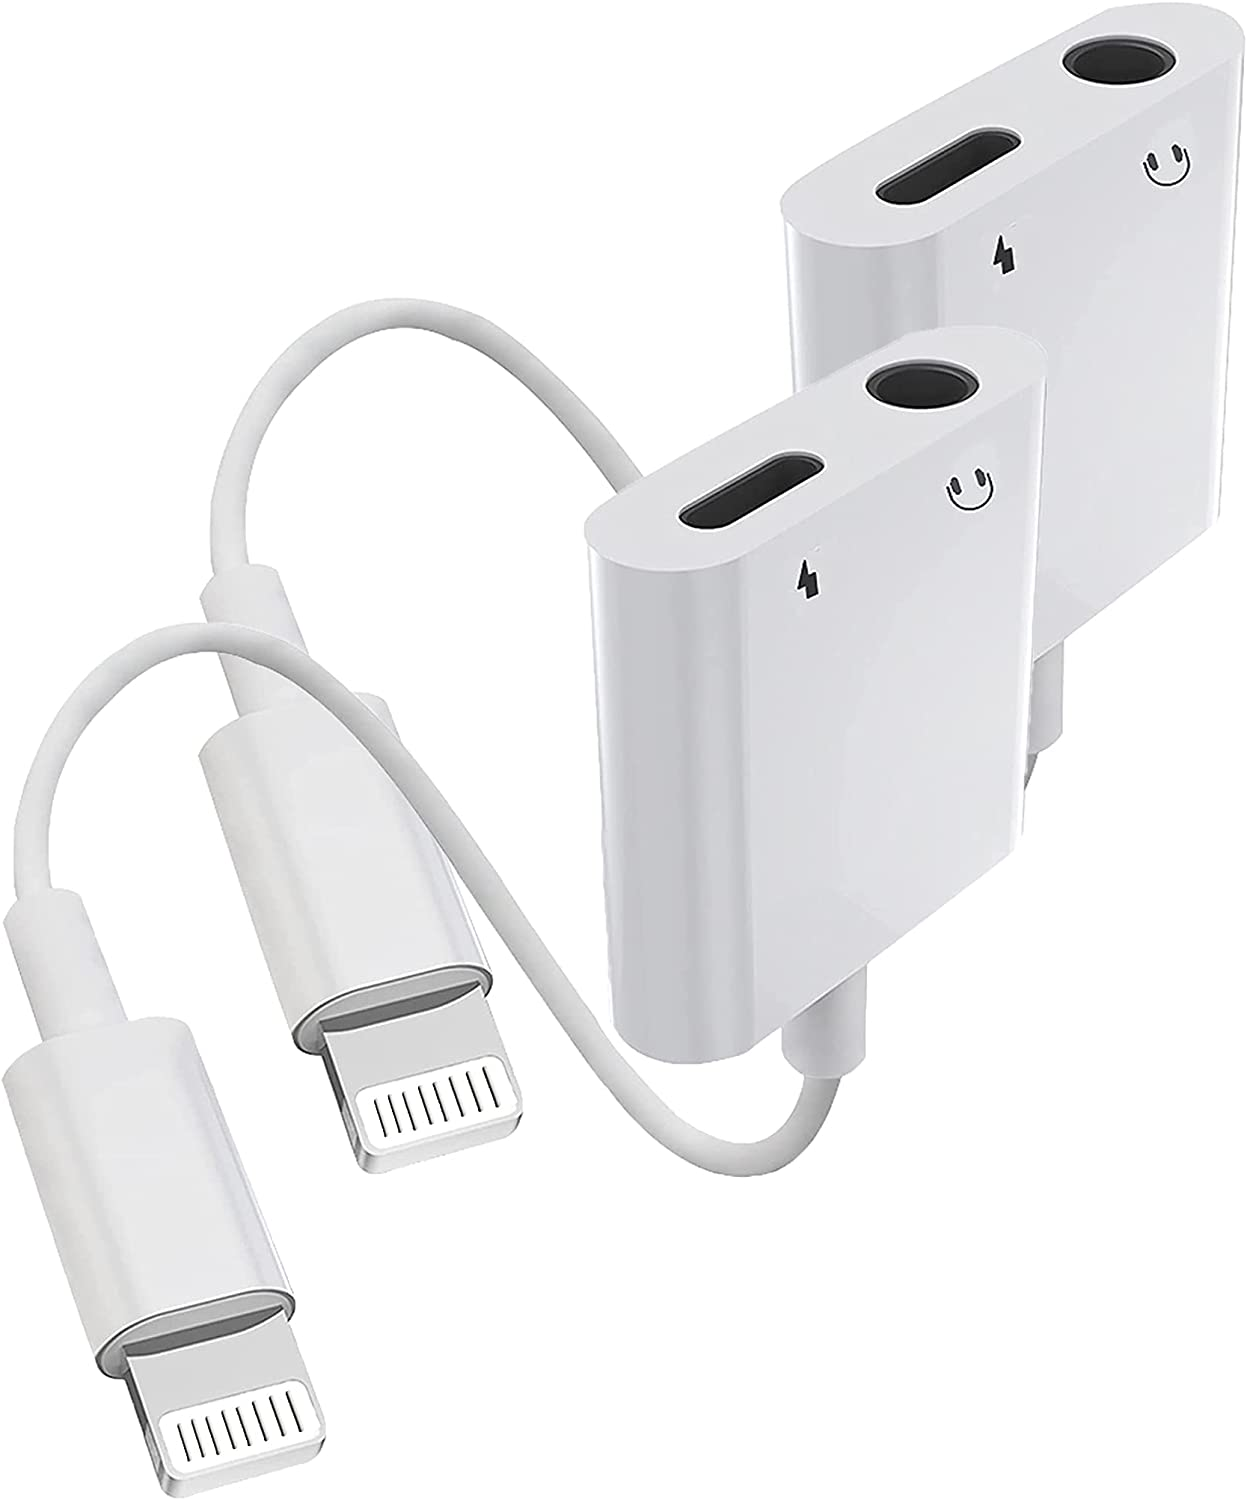 Apple MFi Certified 2 Pack Lightning to 3.5mm Headphones and Charger Adapter for iPhone, 2 in 1 iPhone Charger and Aux Audio Splitter Dongle Compatible for iPhone 12/11/XS/XR/X 8/iPad Support All iOS